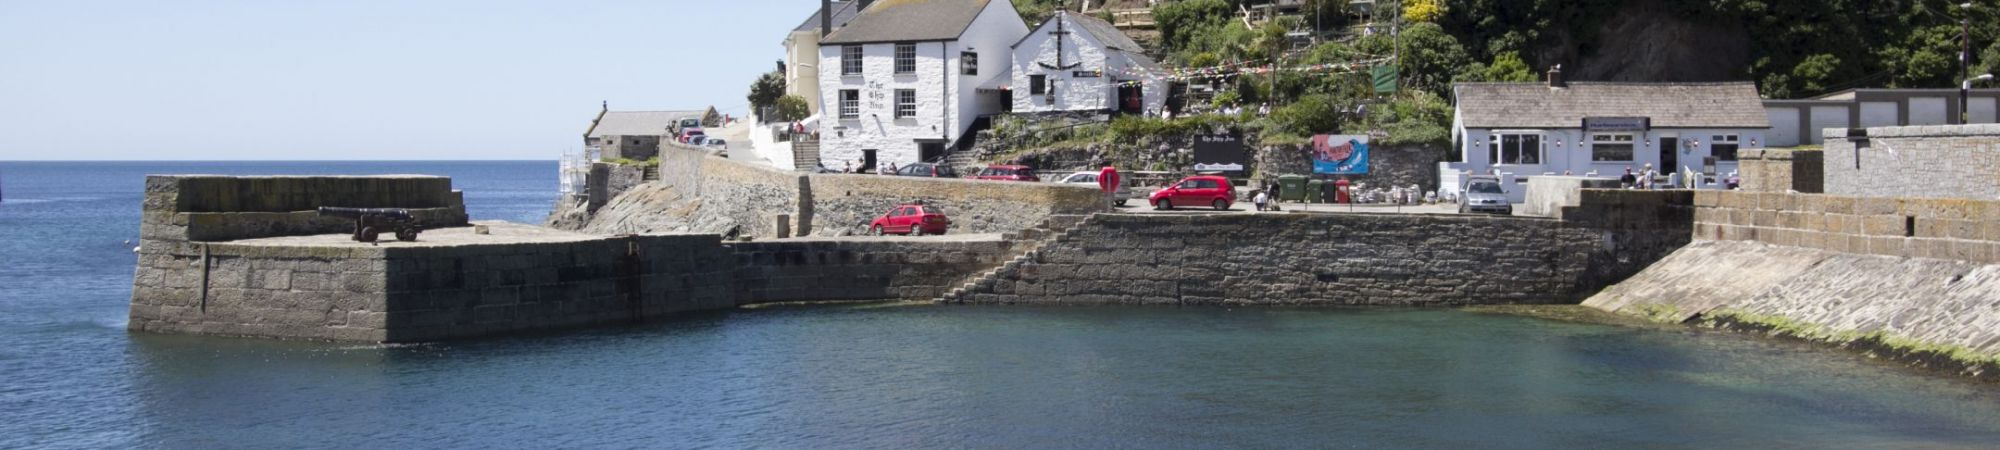 Surf View - Porthleven Holiday Cottages